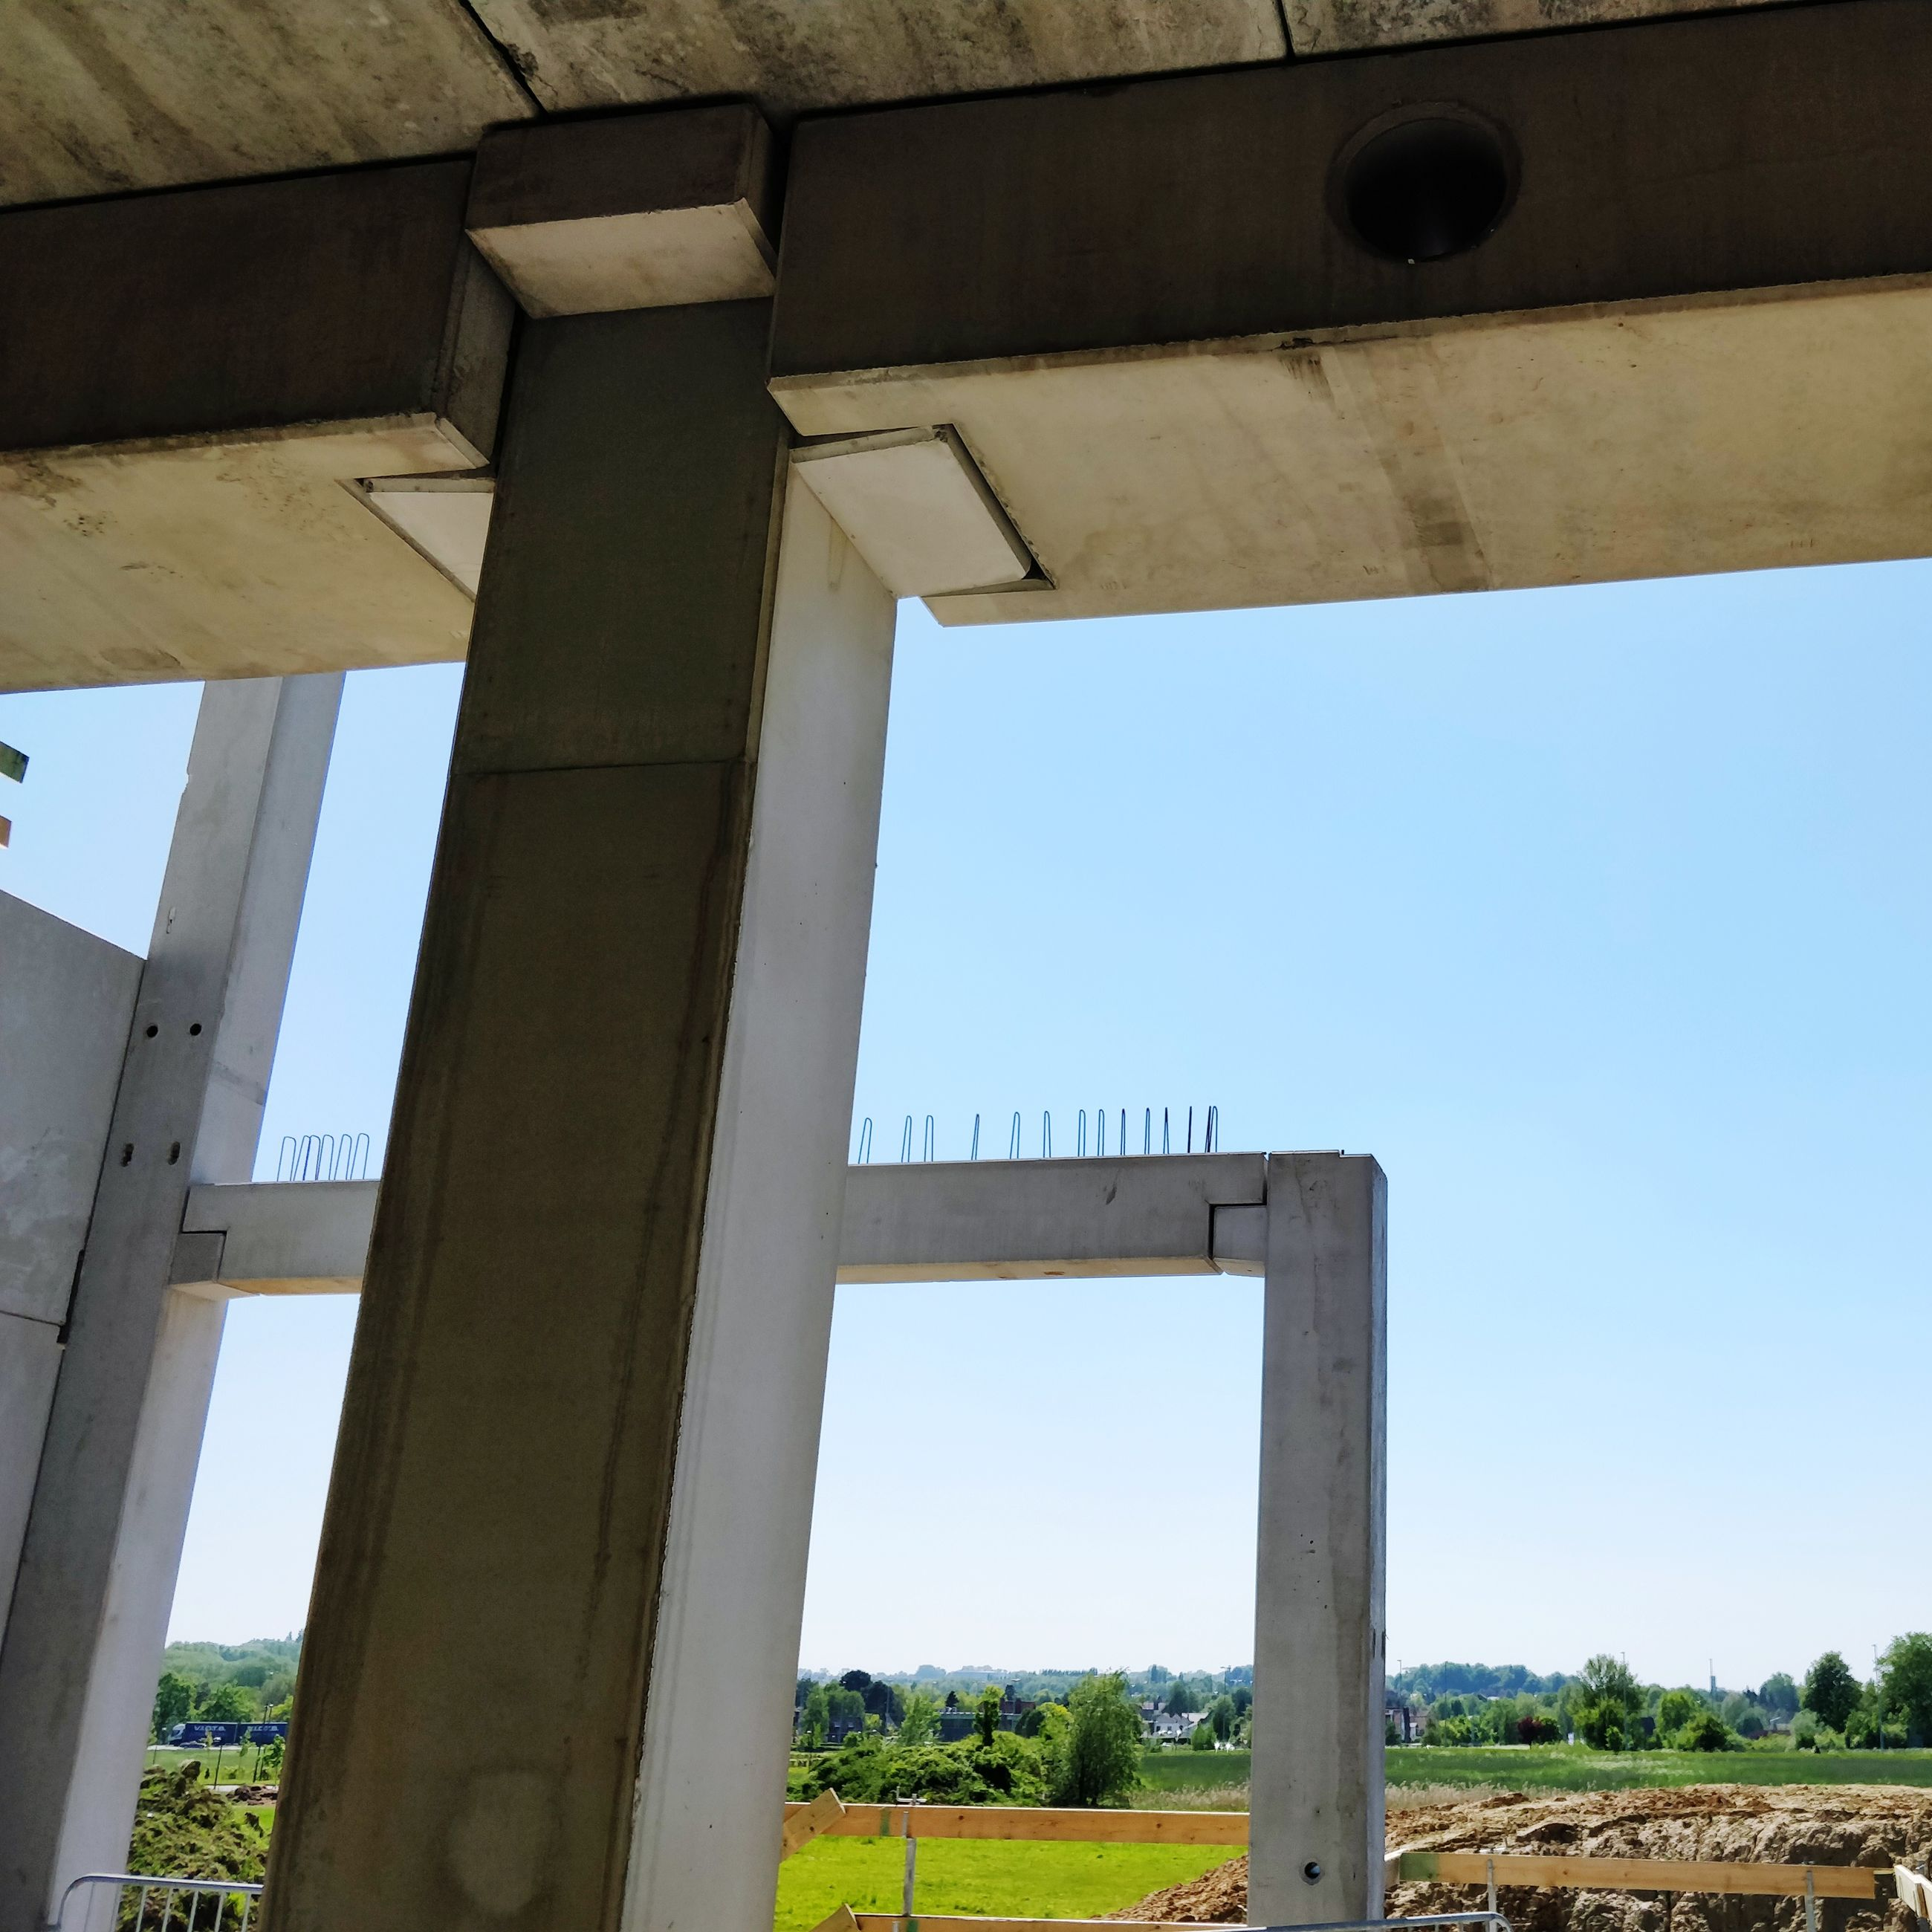 architecture, built structure, sky, day, no people, clear sky, architectural column, nature, bridge, low angle view, bridge - man made structure, transportation, land, connection, outdoors, field, plant, blue, building exterior